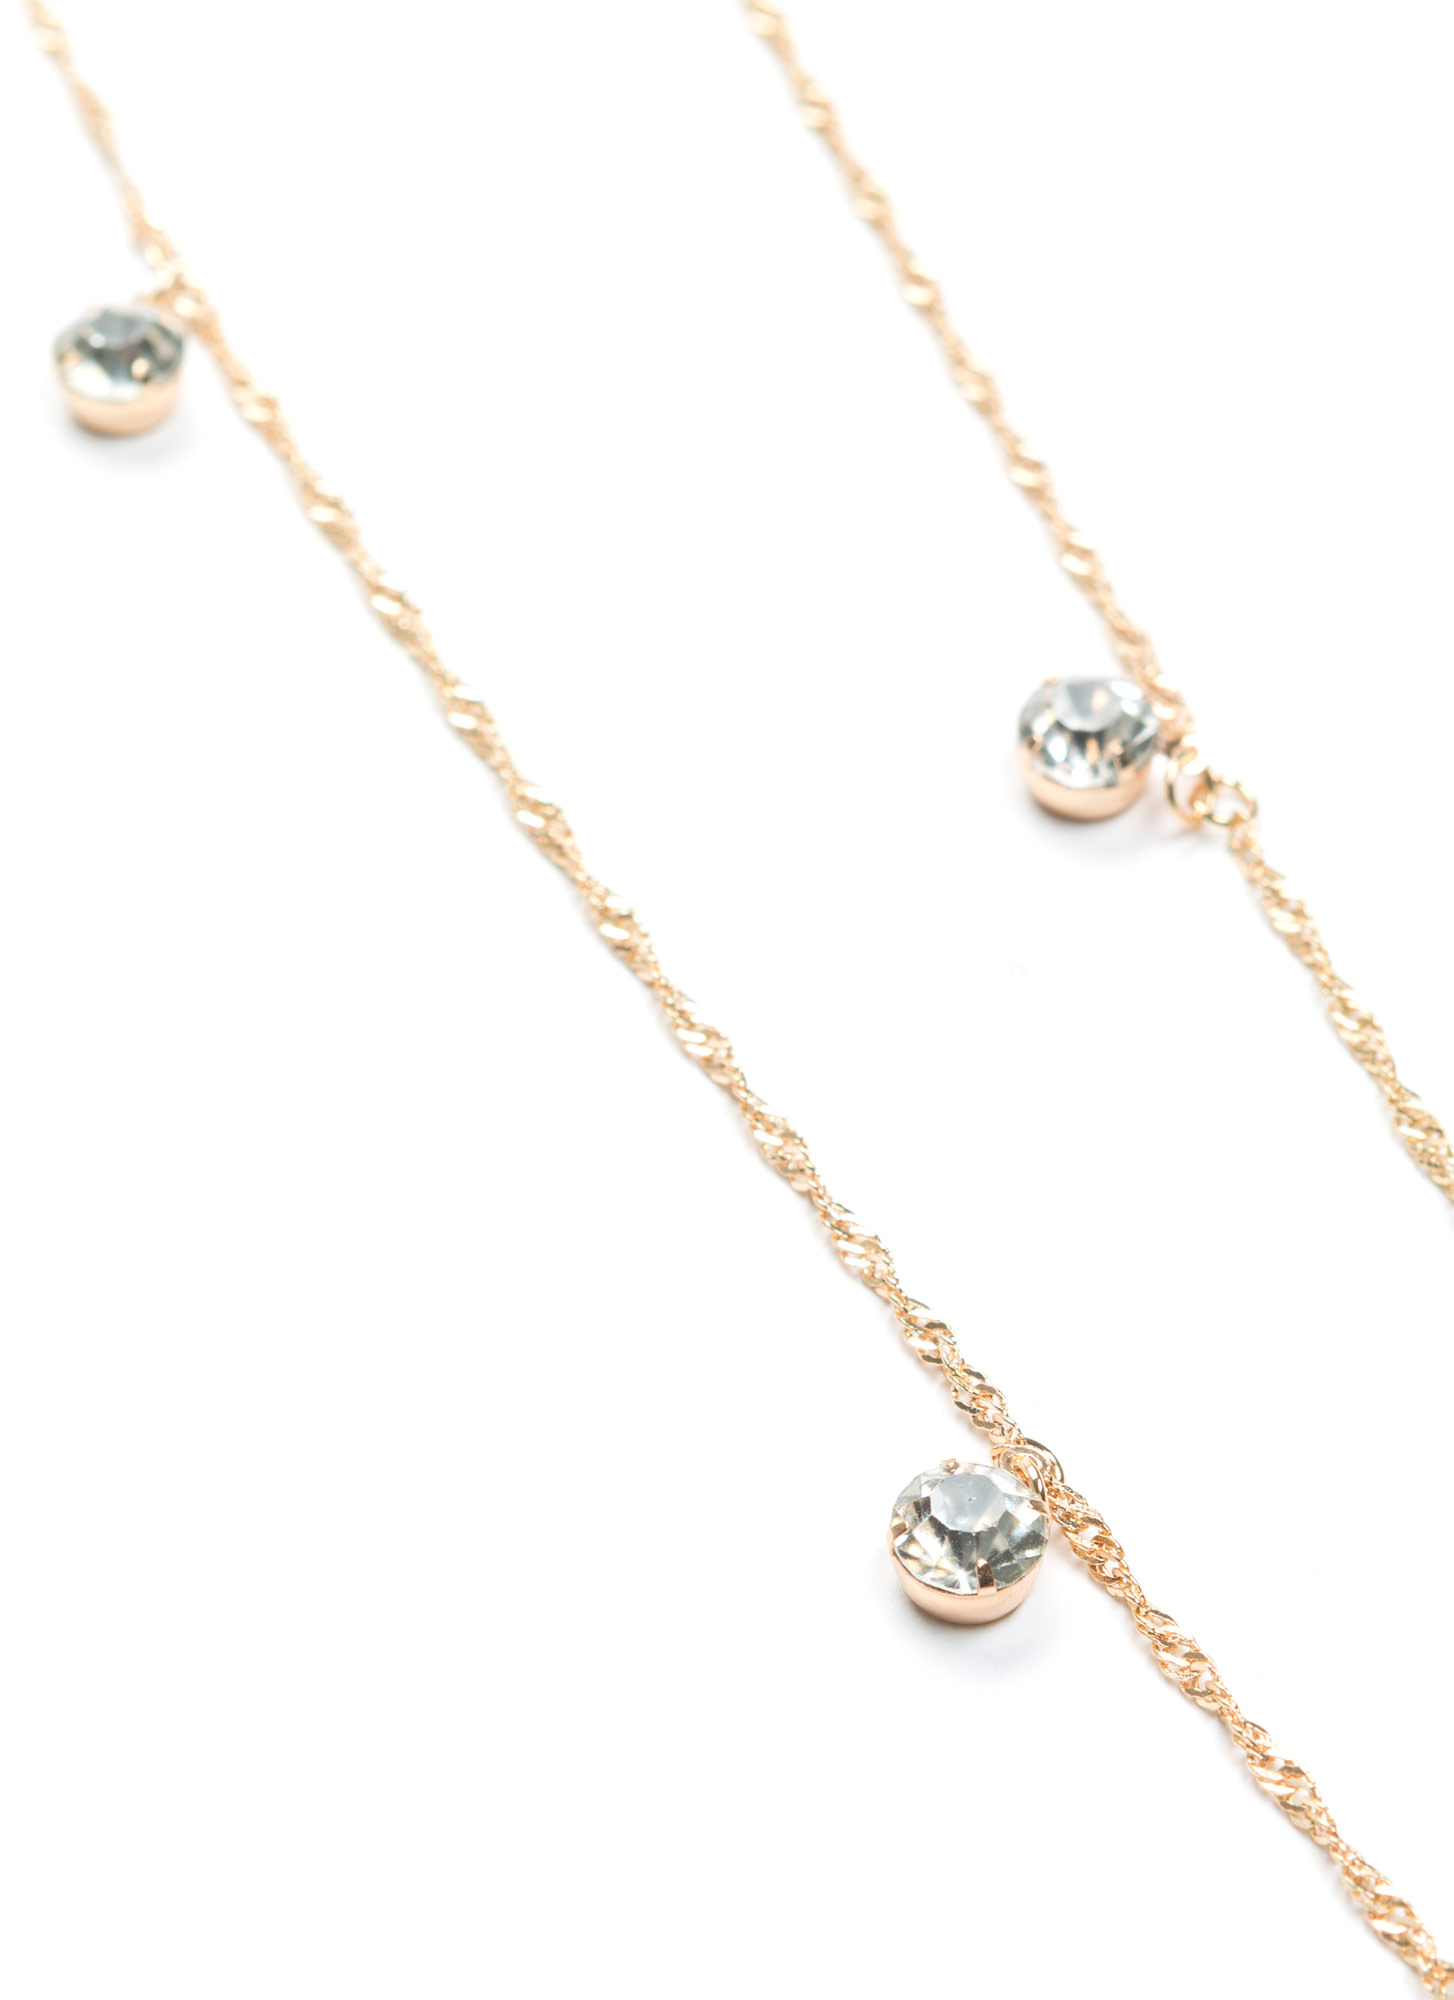 Multiuse Faux Jewel Embellished Chain GOLD